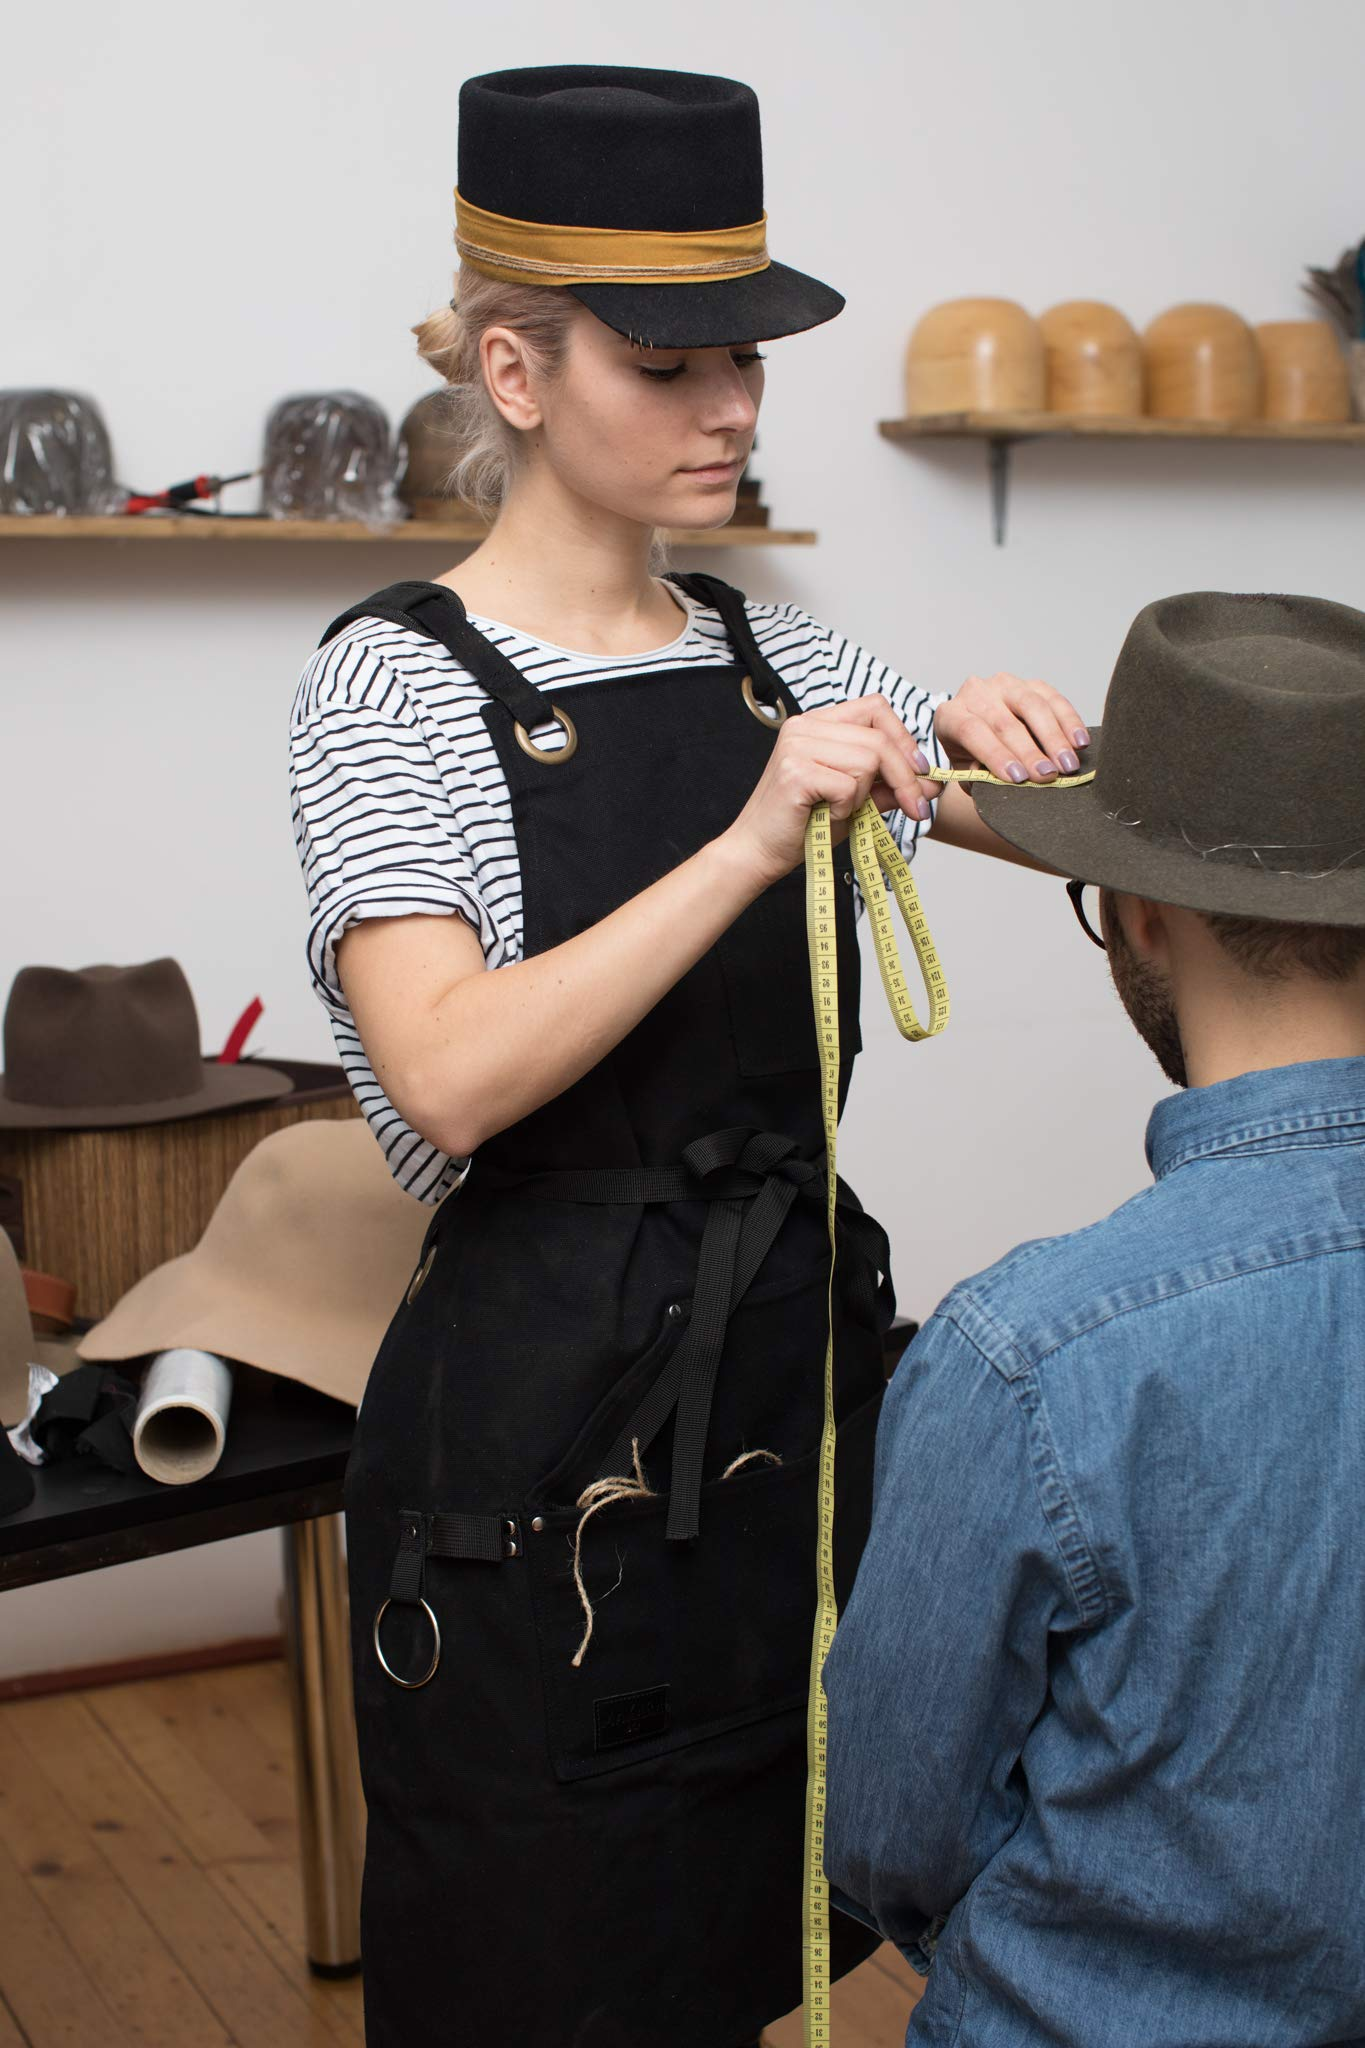 Shop, Work Apron - Waxed Canvas woodworking apron with 6 Spacious Pockets - Durable Apron Tool with Microfiber Towel Included - No Neck Pain, Smart Cross-Back Straps Design - Fully Adjustable S to XXL by Makara.907 (Image #9)